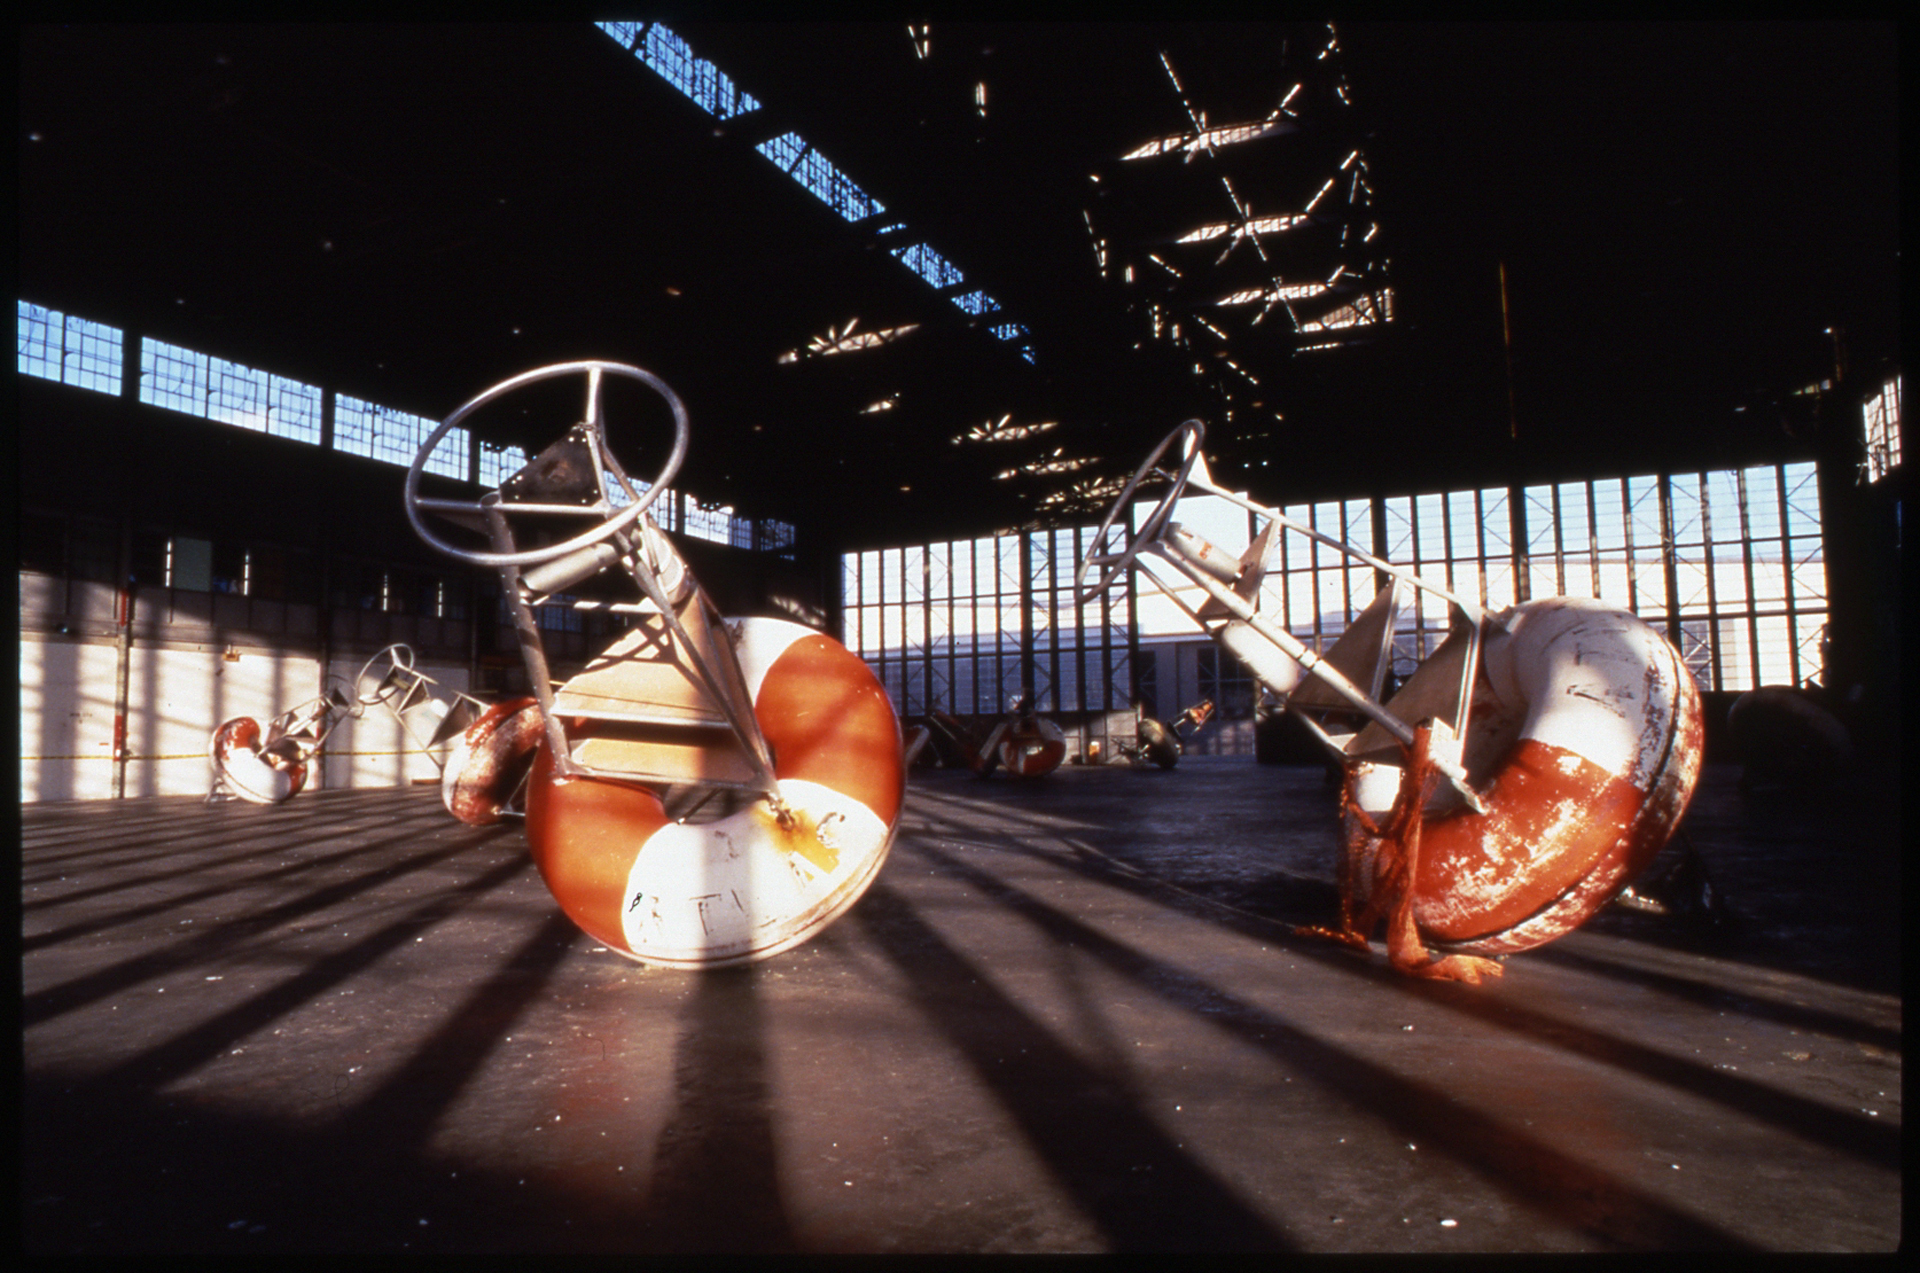 """""""It appeared as if the hangar doors parted, a big wave rushed in and left the beached buoys calling out with memories of the Sea."""" Anonymous"""